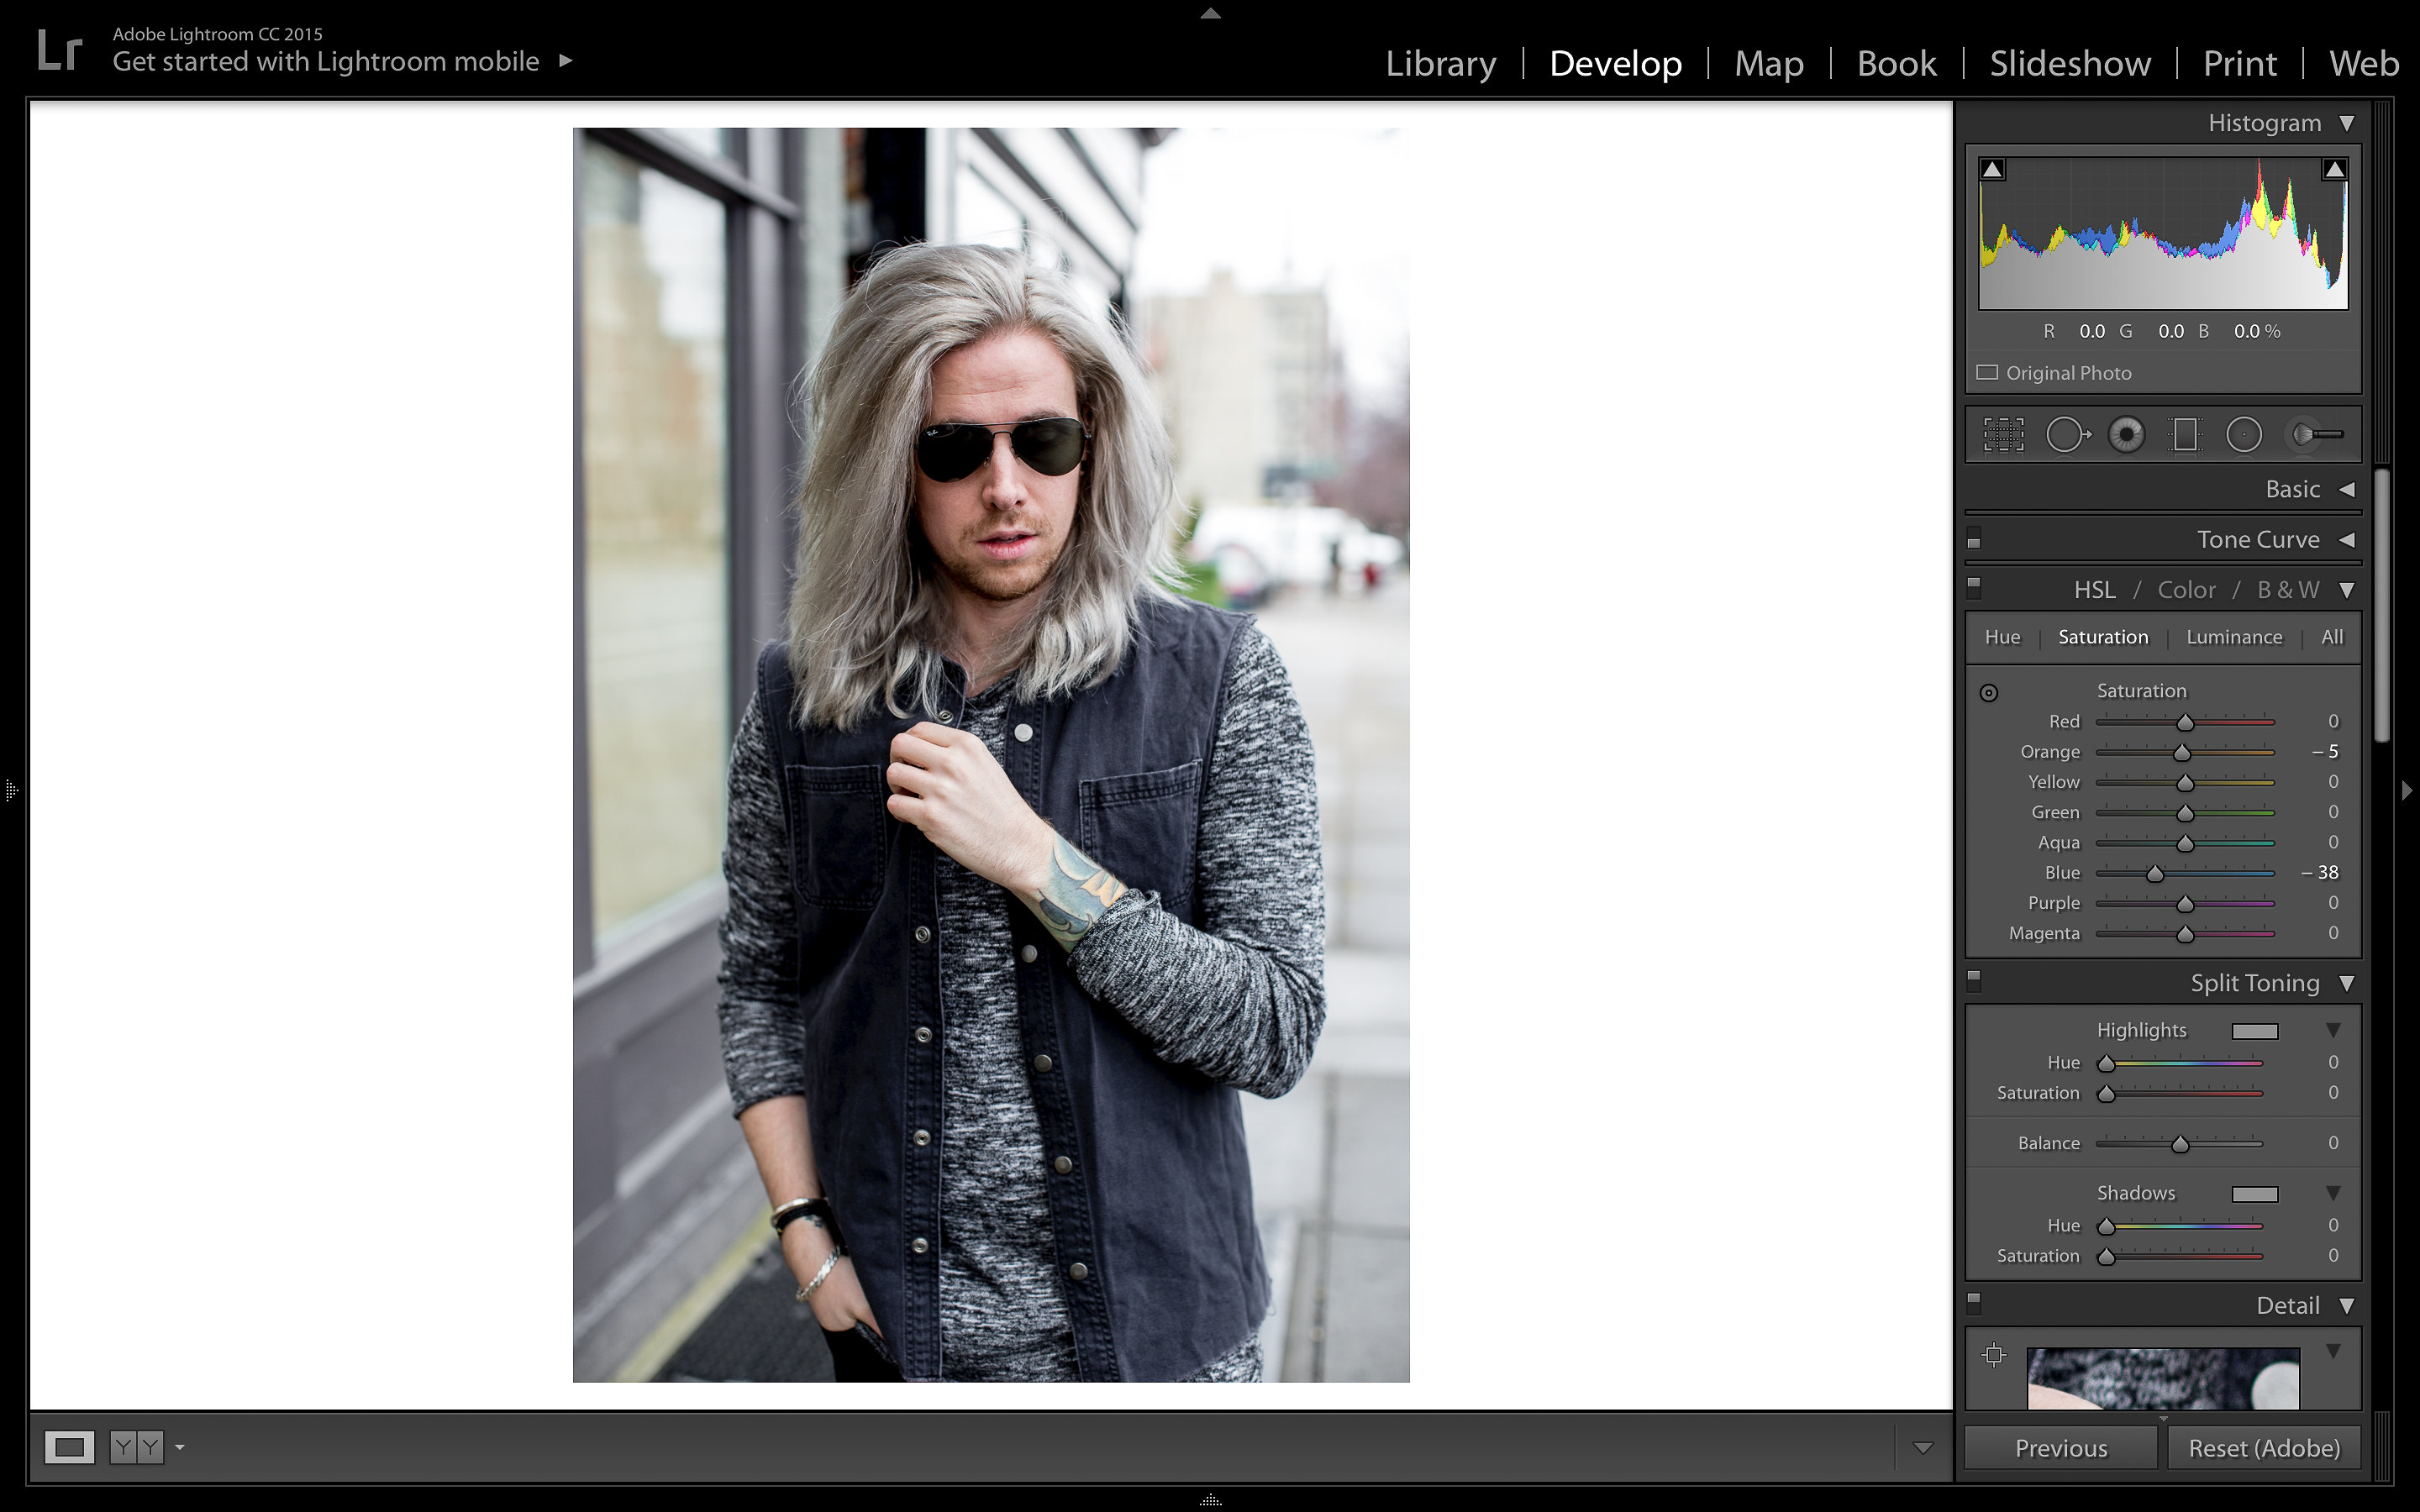 lightroom editing, how to edit in lightroom, how to edit blog photos, how to edit blog photos in lightroom